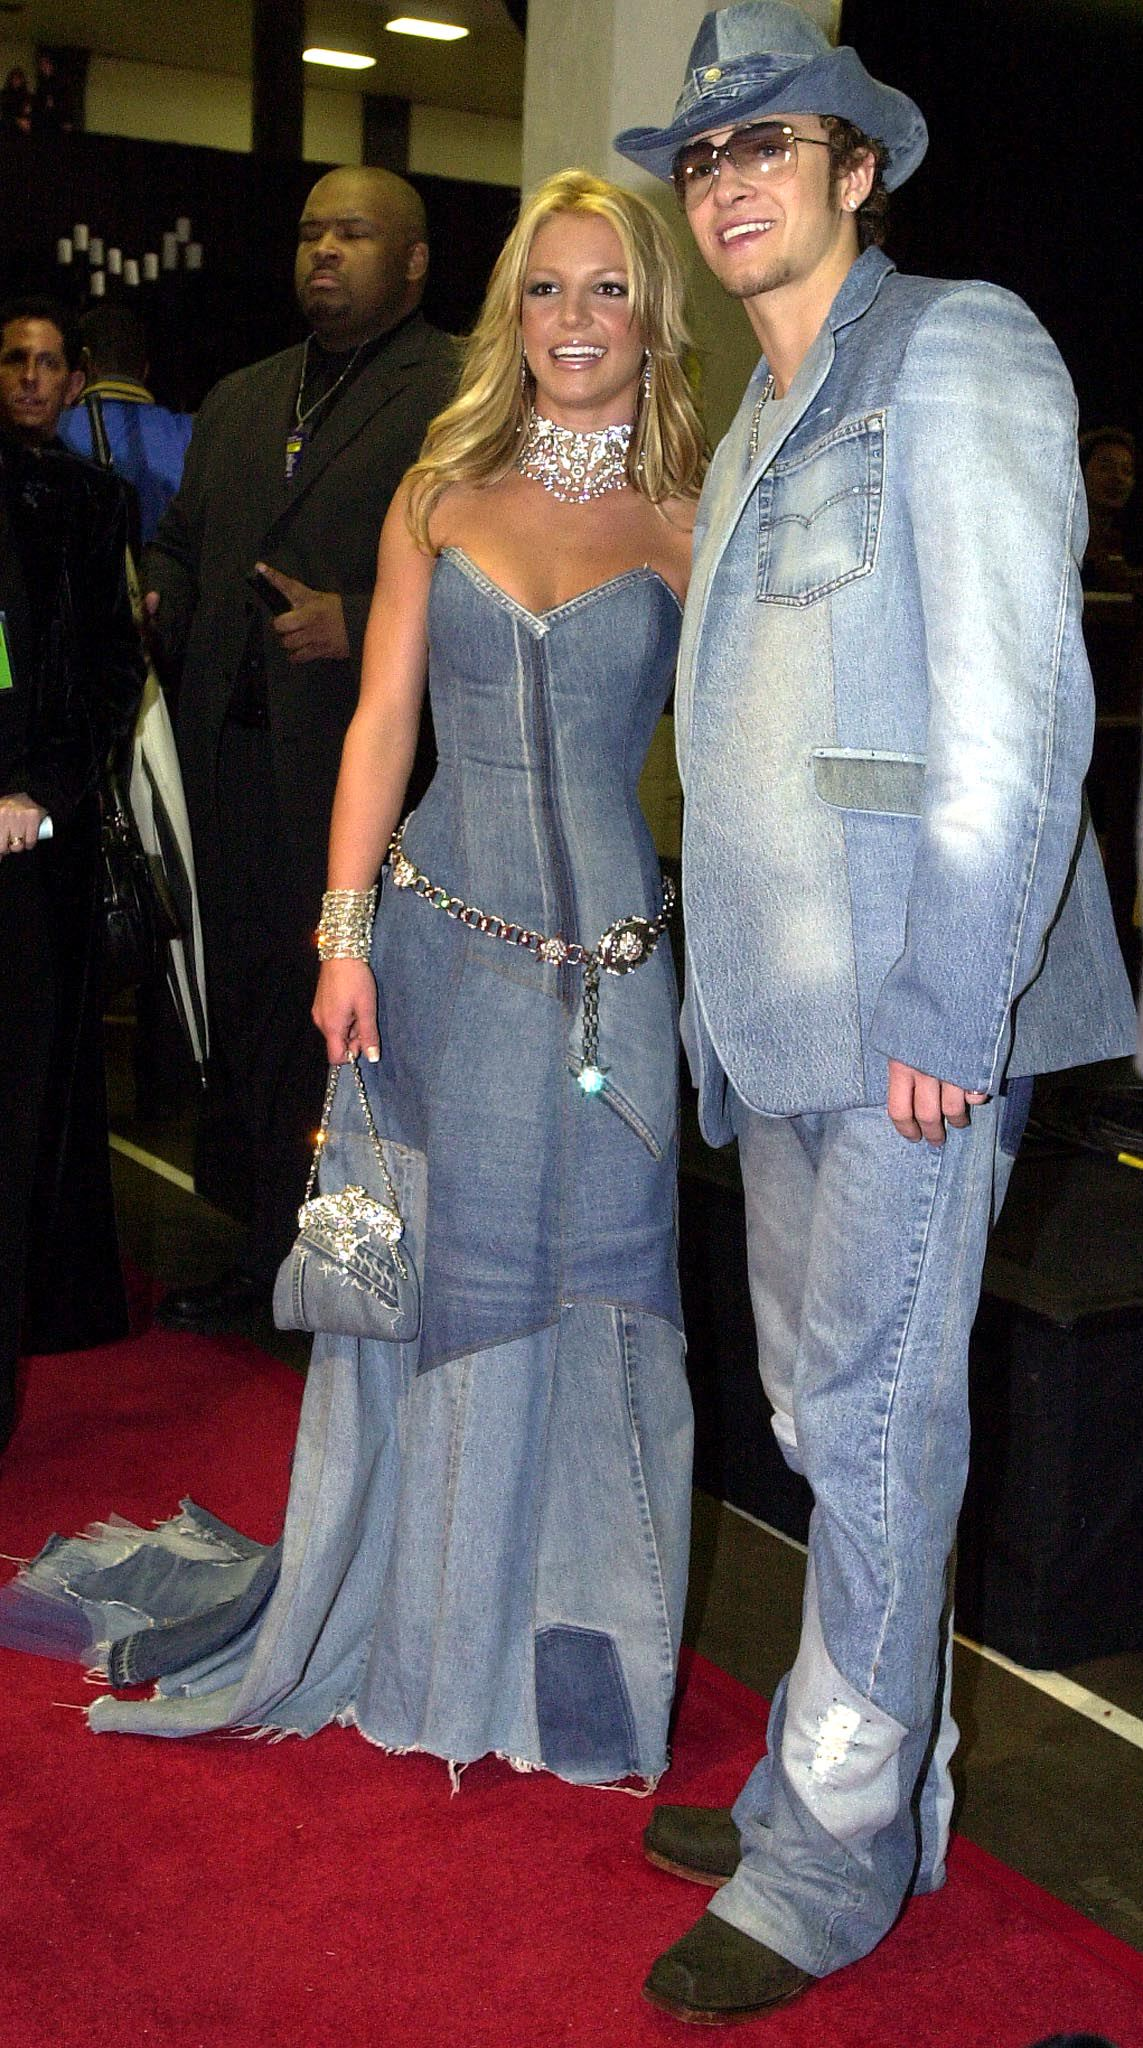 Pop star Britney Spears (l) and her boyfriend, Jus